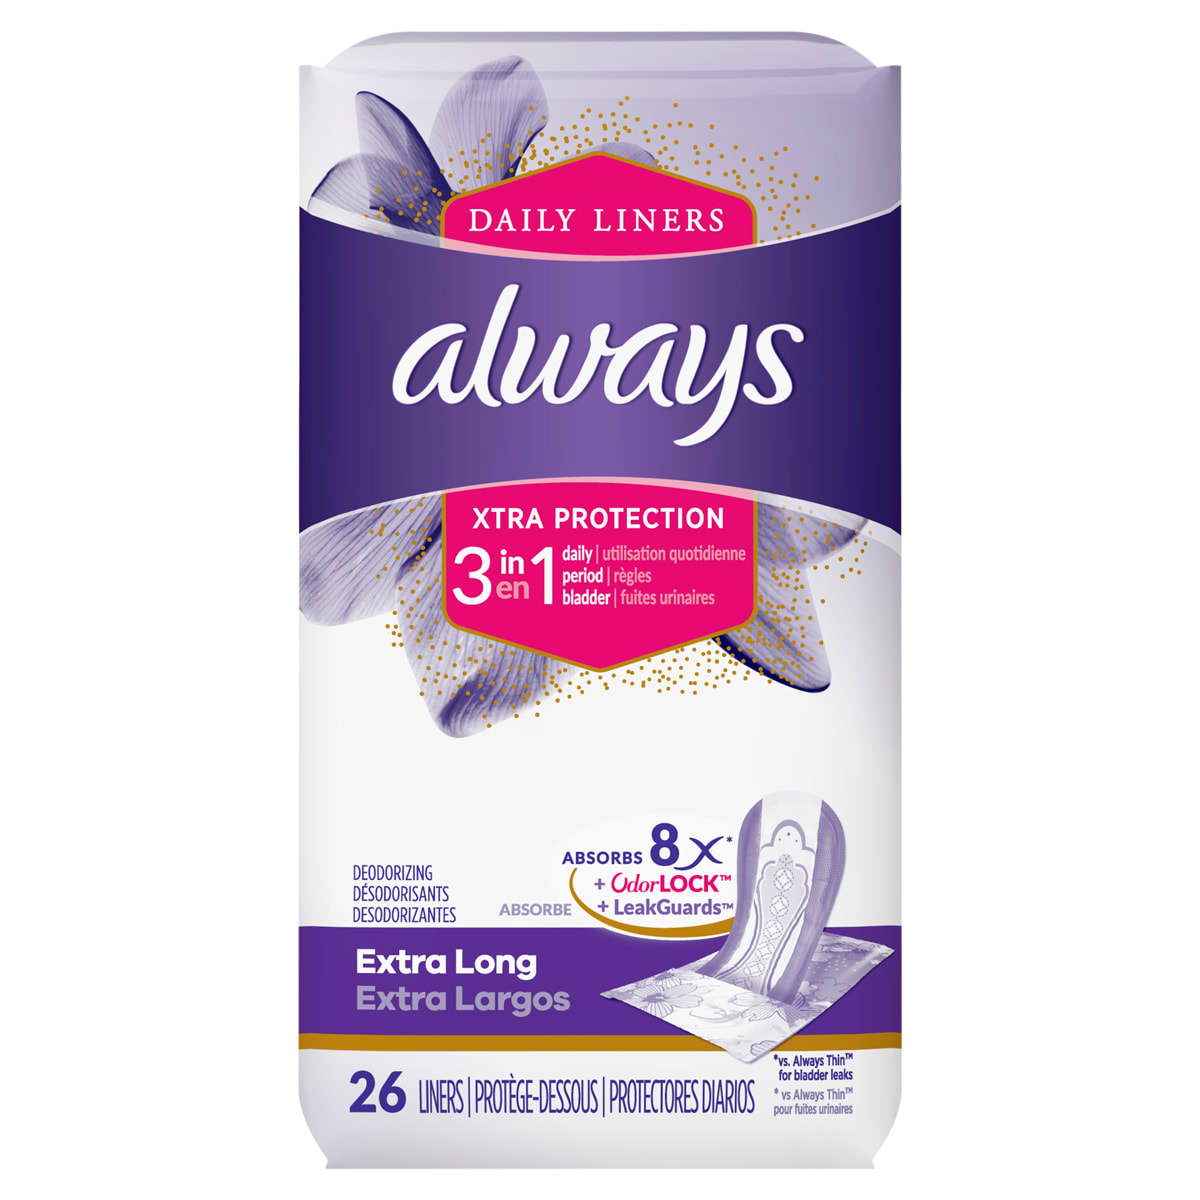 Always Xtra Protect 3 in 1 Extra Long Liners With LeakGuards 26ct